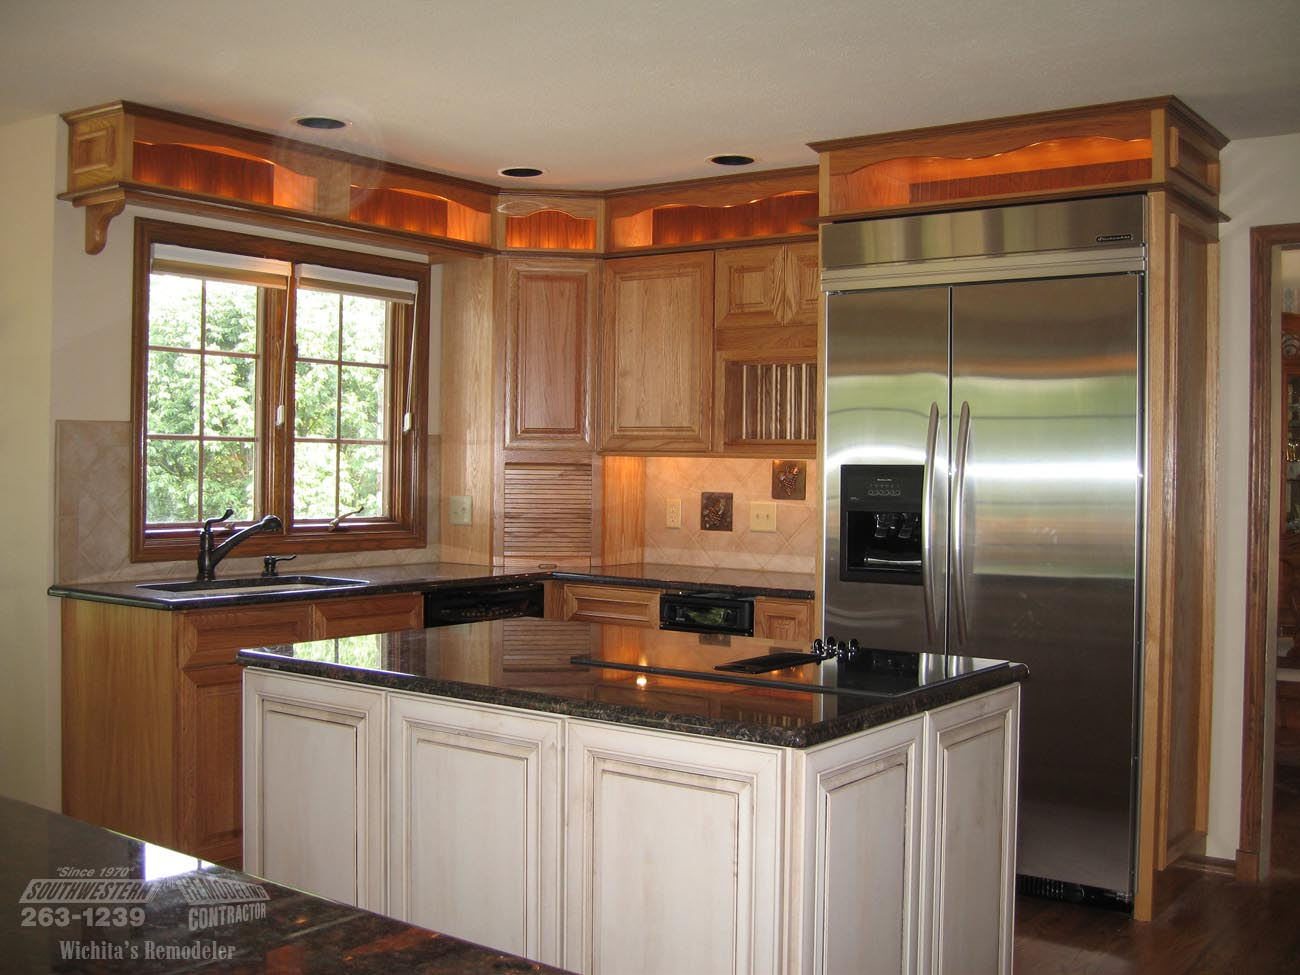 Bon 30 · Kitchen Remodeling Wichita Home Remodeling